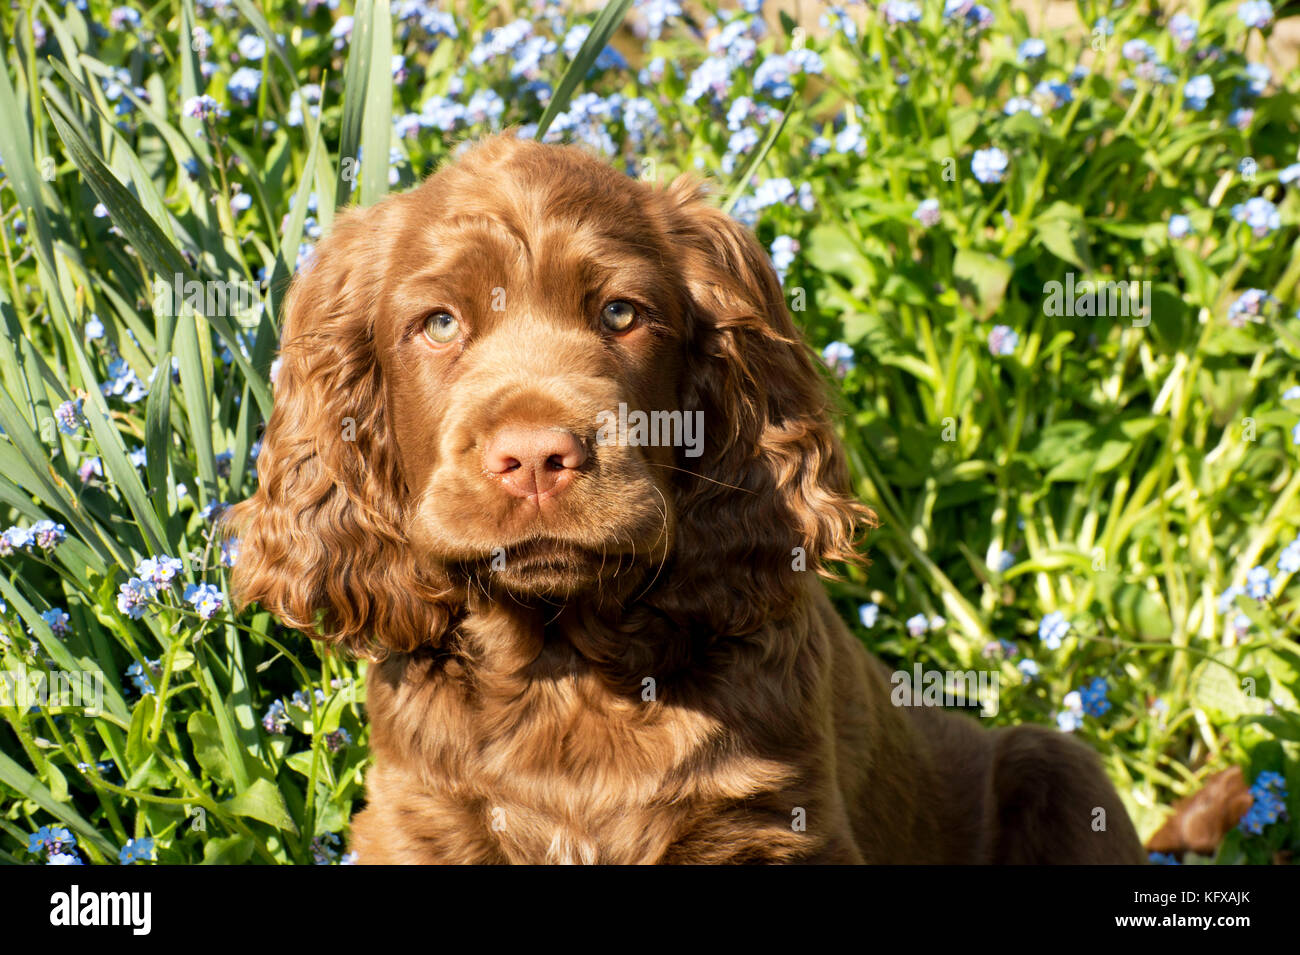 Dog 14 Week Old Sussex Spaniel Puppy In A Flower Bed Stock Photo